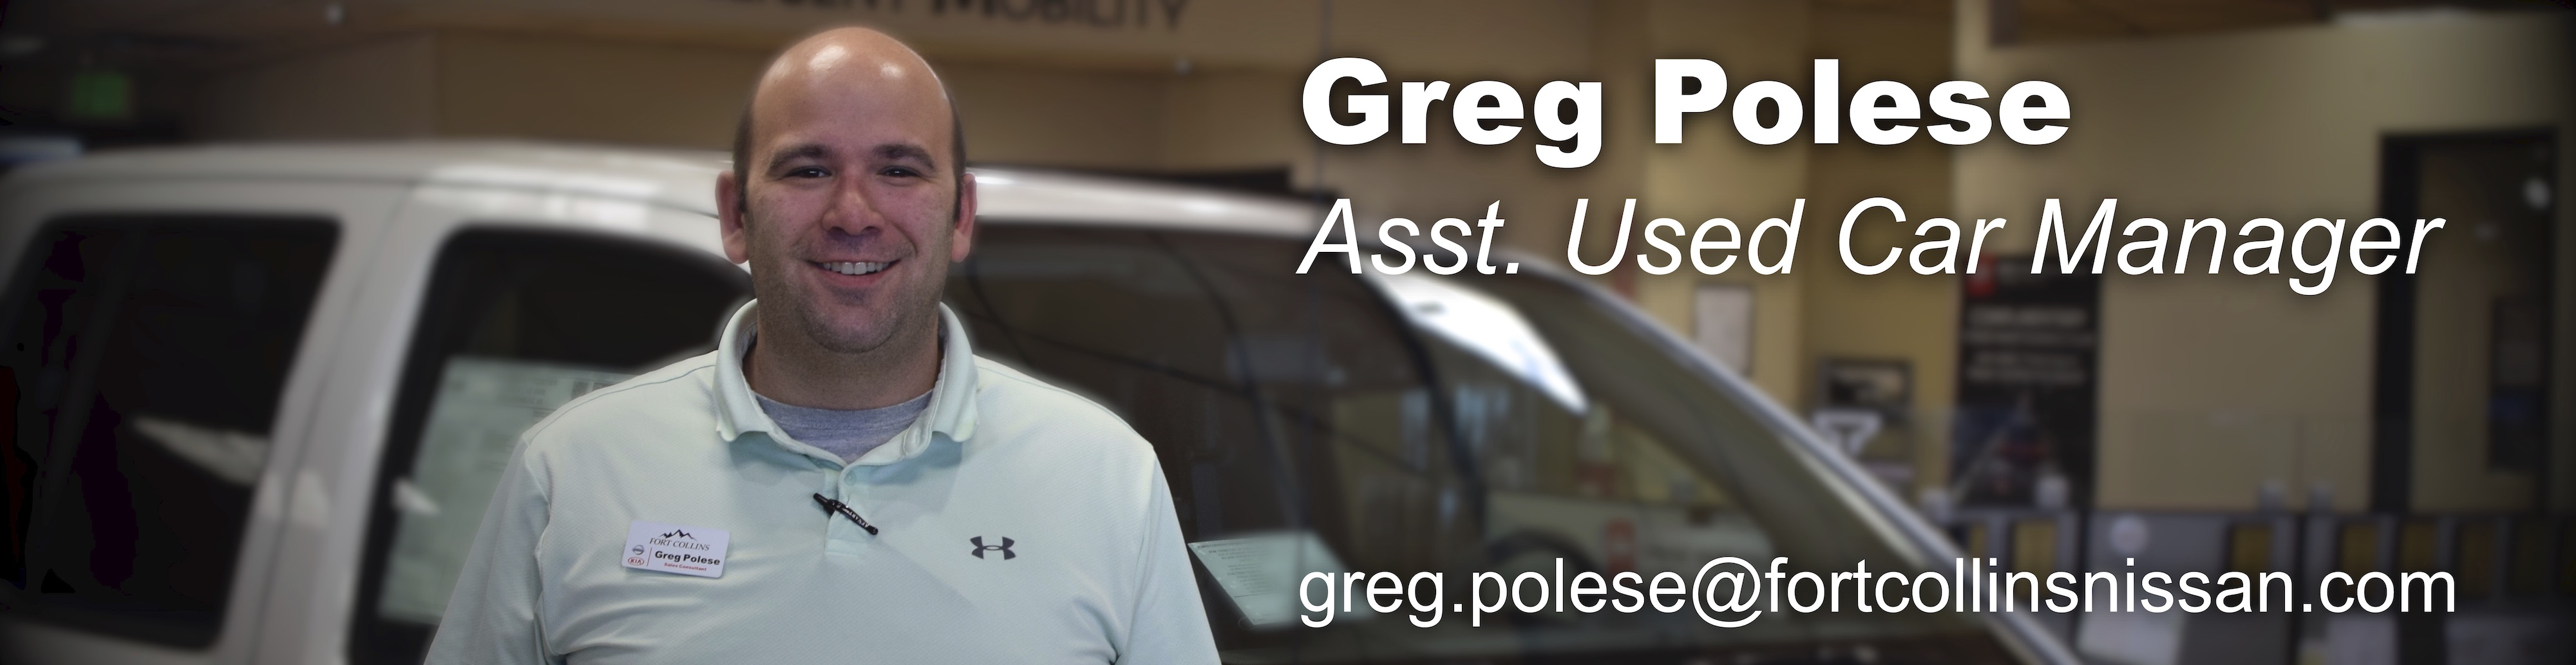 Assisstant Used Car Manager Greg Polese